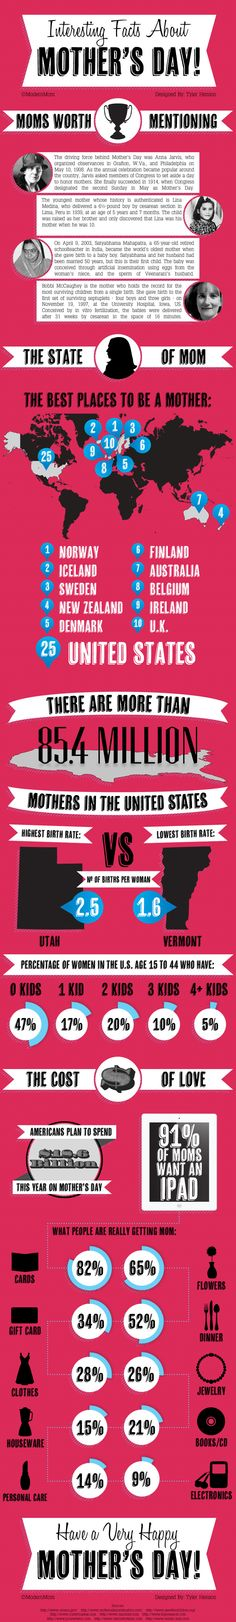 For those who are following Mother's Day, find some facts .... For the rest of us be happy and stay tolerant. Did you know that Mother's Day was founded by Anna Jarvis in 1908? Or that the youngest mother in history gave birth at the age of 5 years and 7 months old? Learn more interesting facts about Mother's Day and moms with this cool infographic!